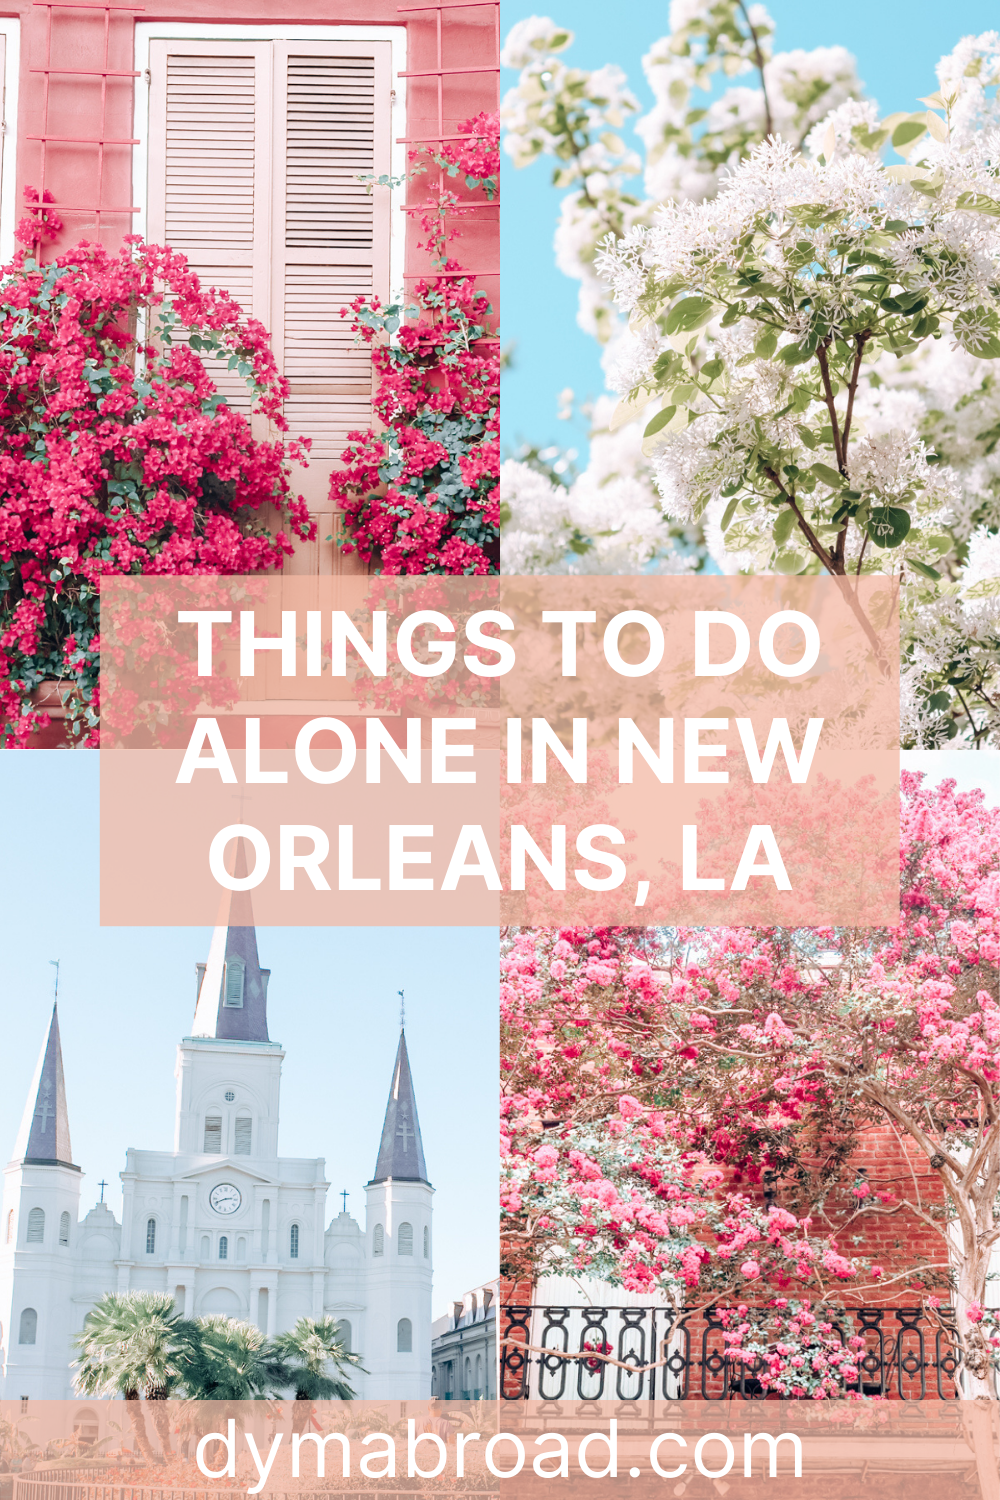 Things to do alone in New Orleans second Pinterest image